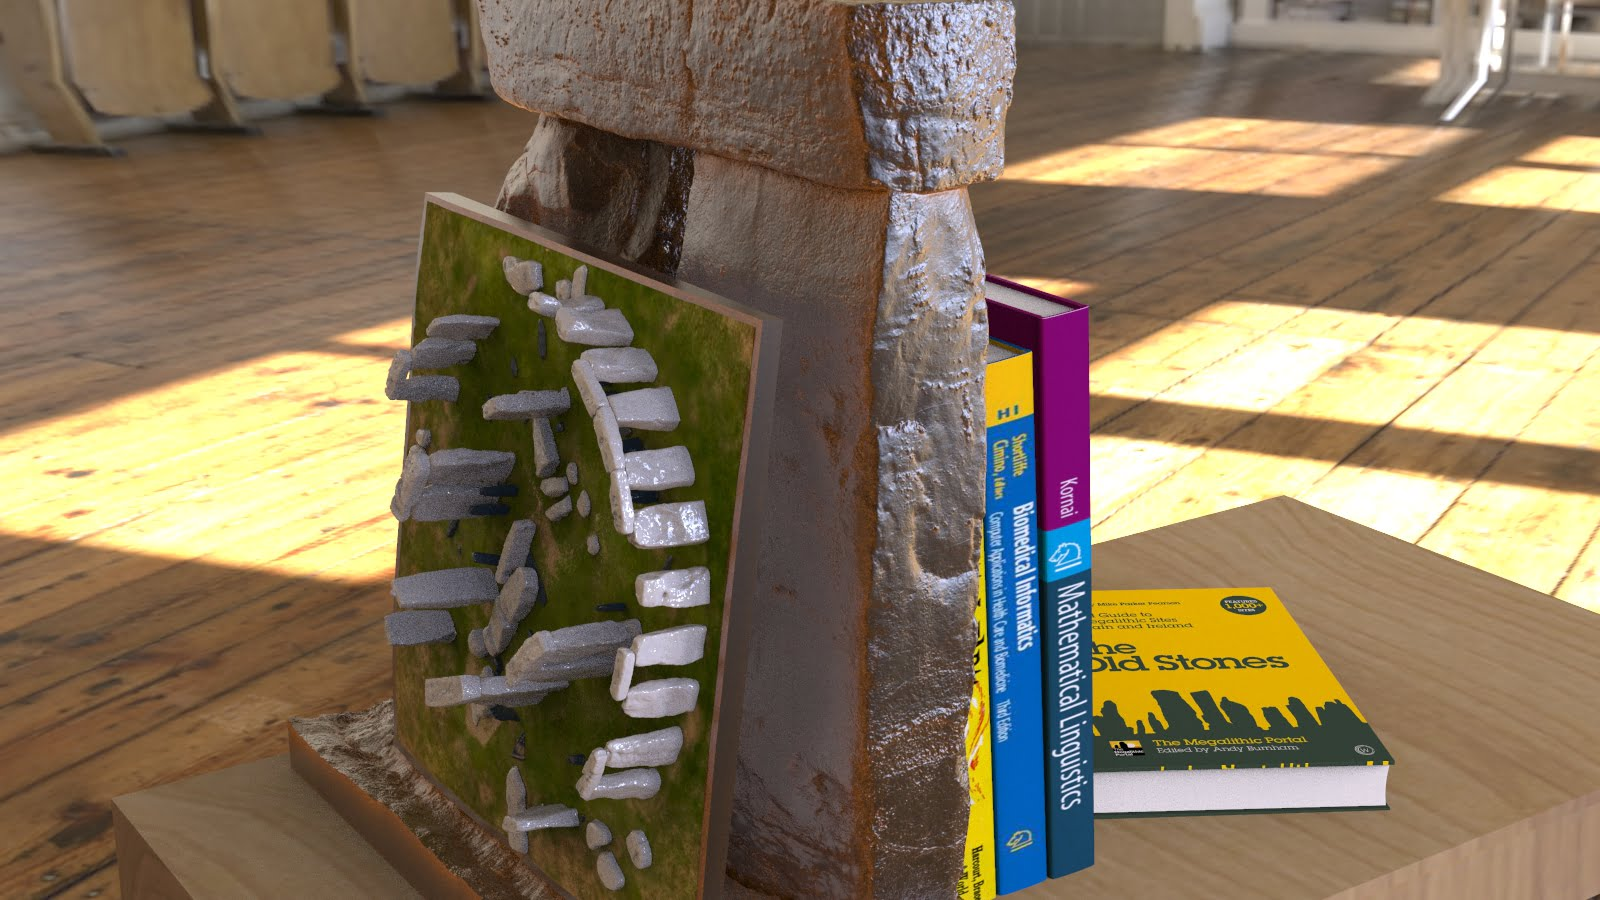 Buy Stonehenge Models: Stonehenge replica model bookend at 26th scale in rusted patina cold cast iron with lean to detachable full model at 200th scale 006  - 24th scale bookend with 200th full model -